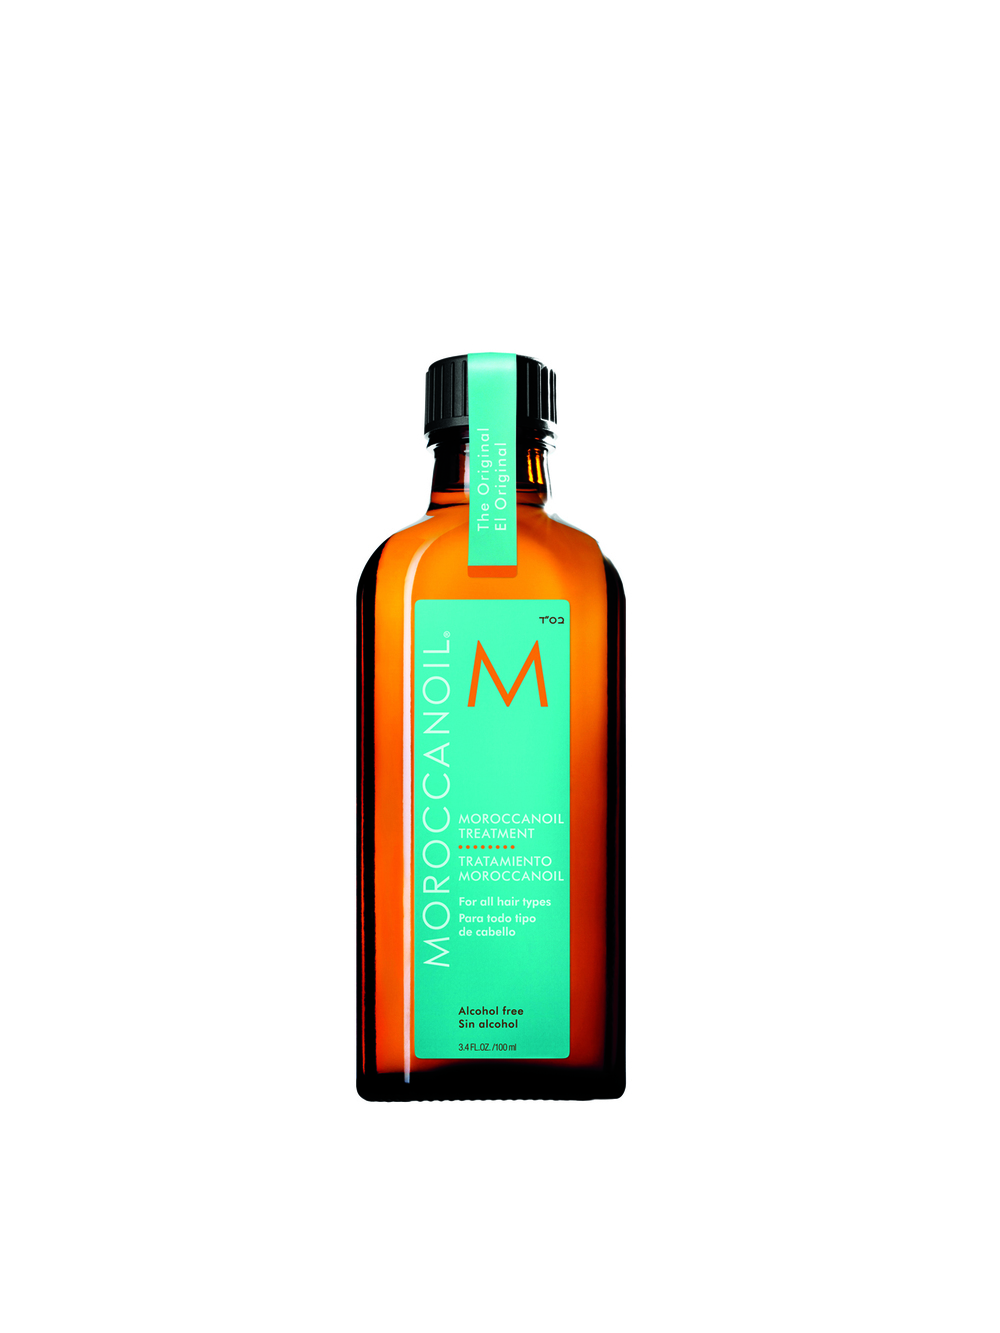 Clients|Moroccanoil